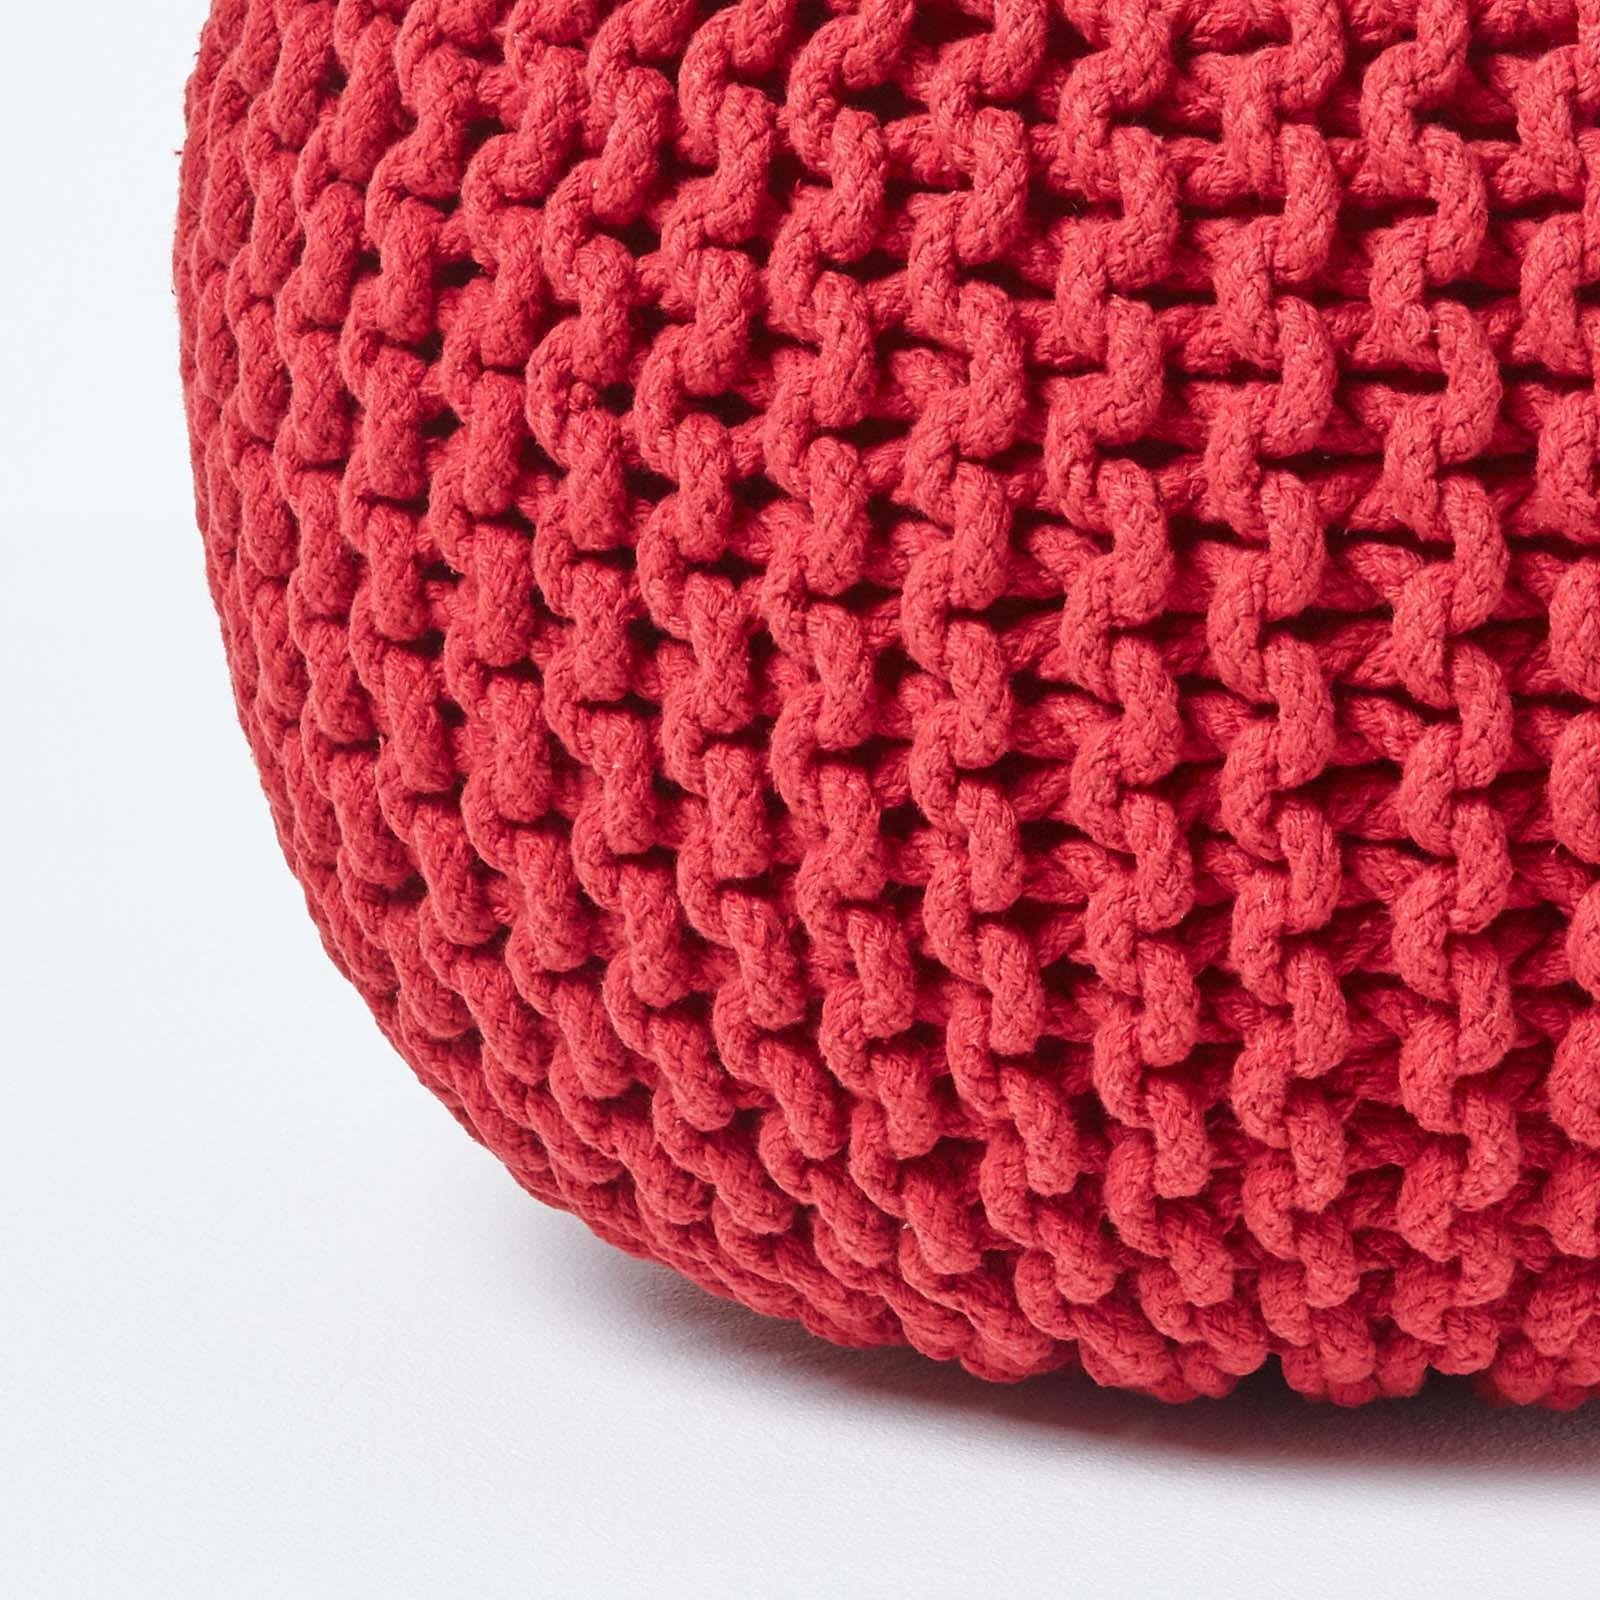 Hand-Knitted-100-Cotton-Pouffes-Round-Sphere-Or-Cube-Square-Chunky-Footstools thumbnail 173